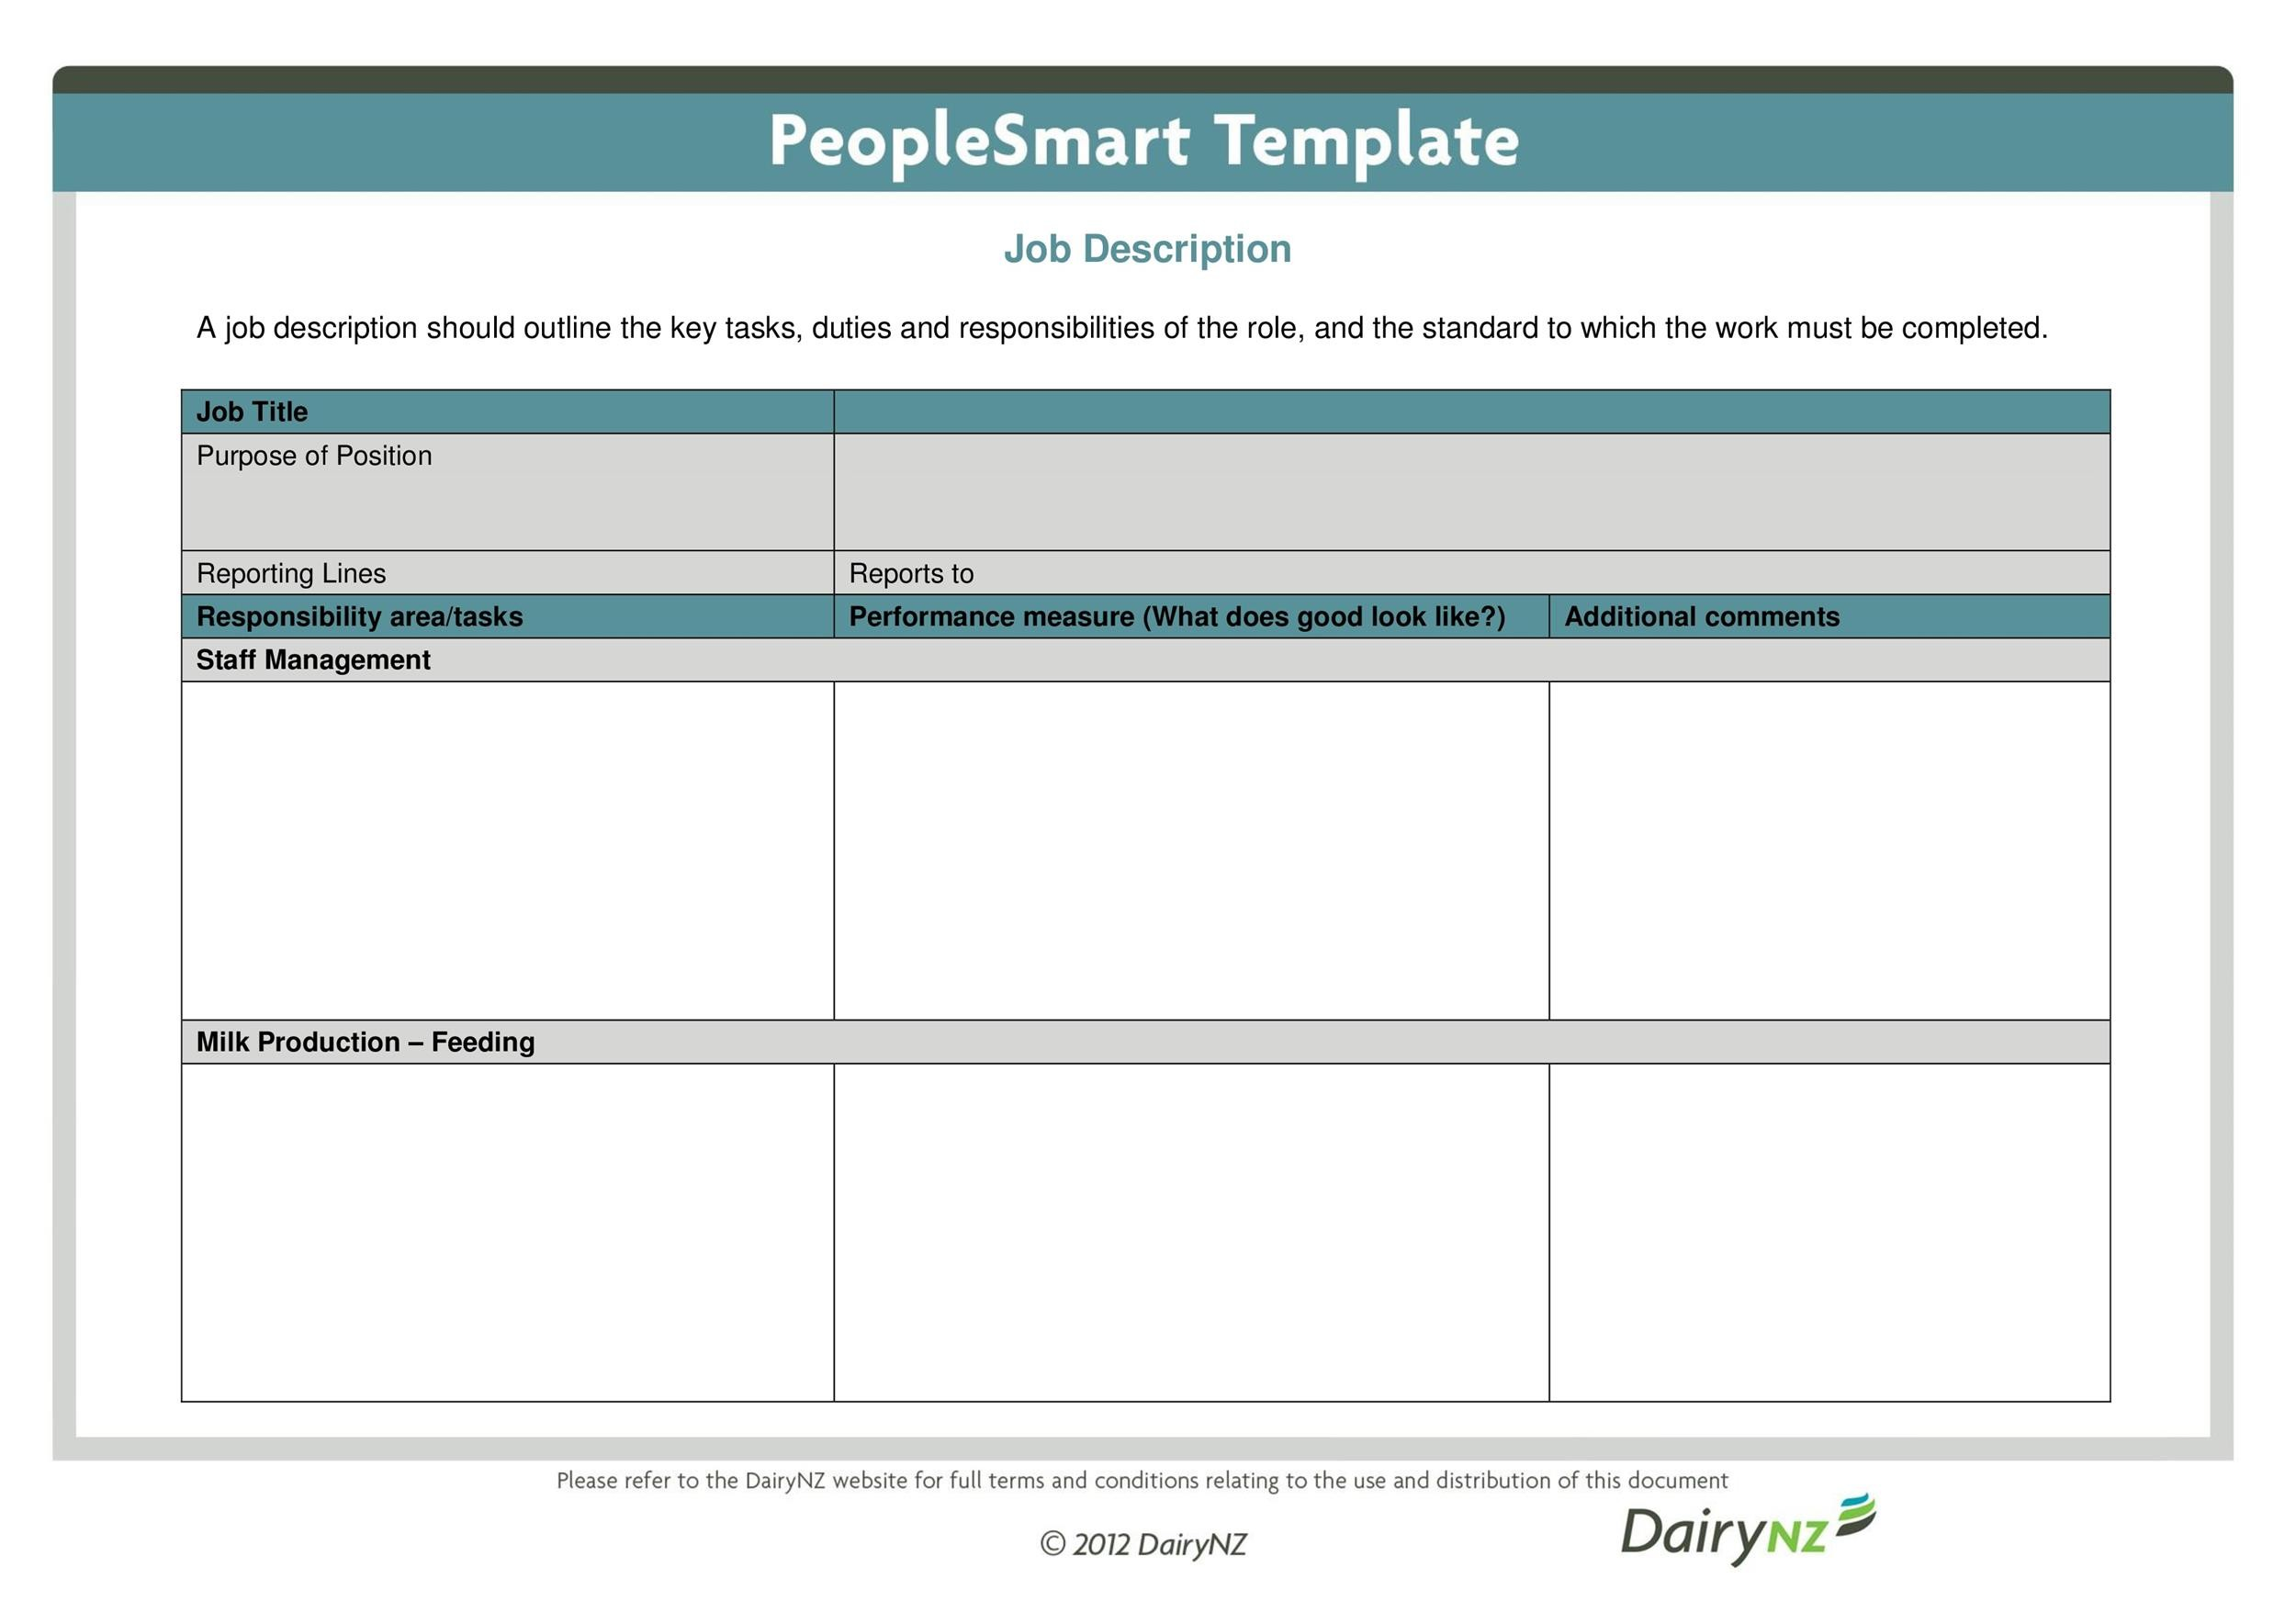 Job Description Templates  Examples  Template Lab